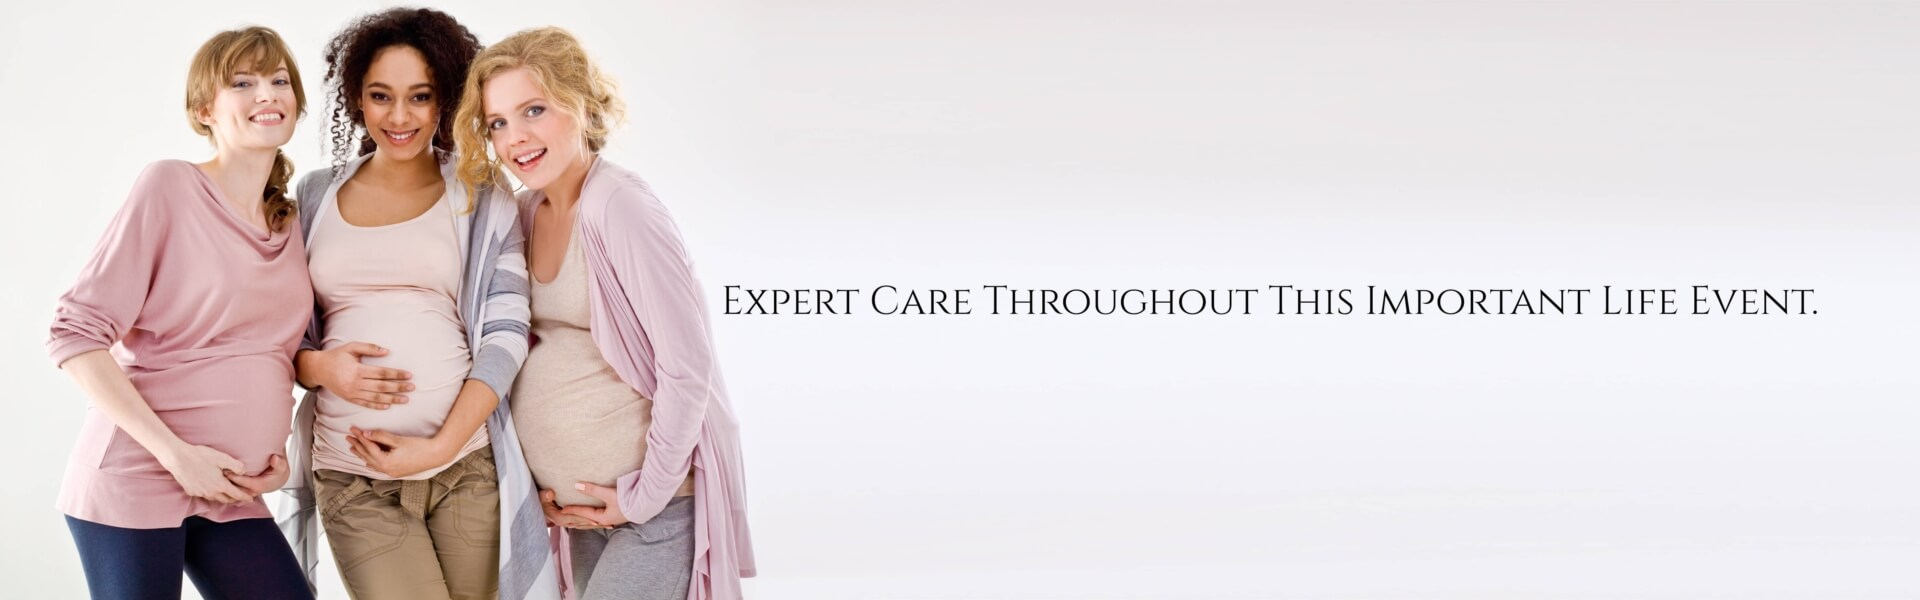 Expert Care Throughout This Important Life Event.